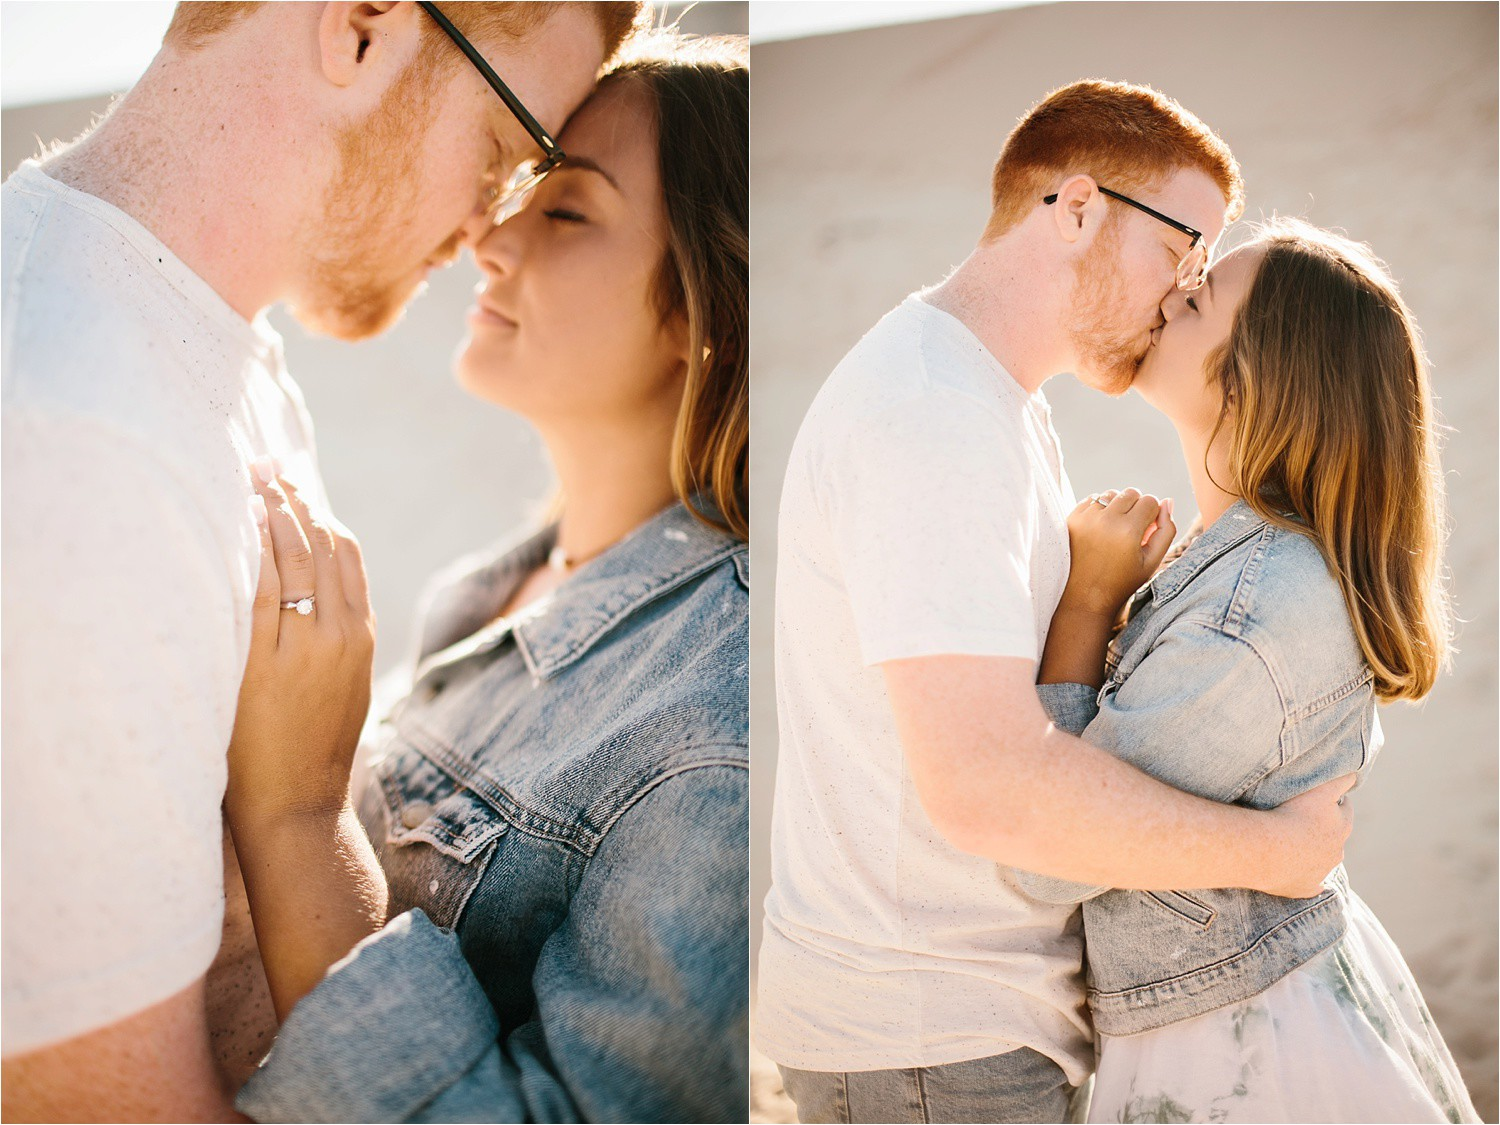 Lauren + Jacob __ a monahans sand dunes engagement session at sunrise by North Texas Wedding Photographer, Rachel Meagan Photography __ 43